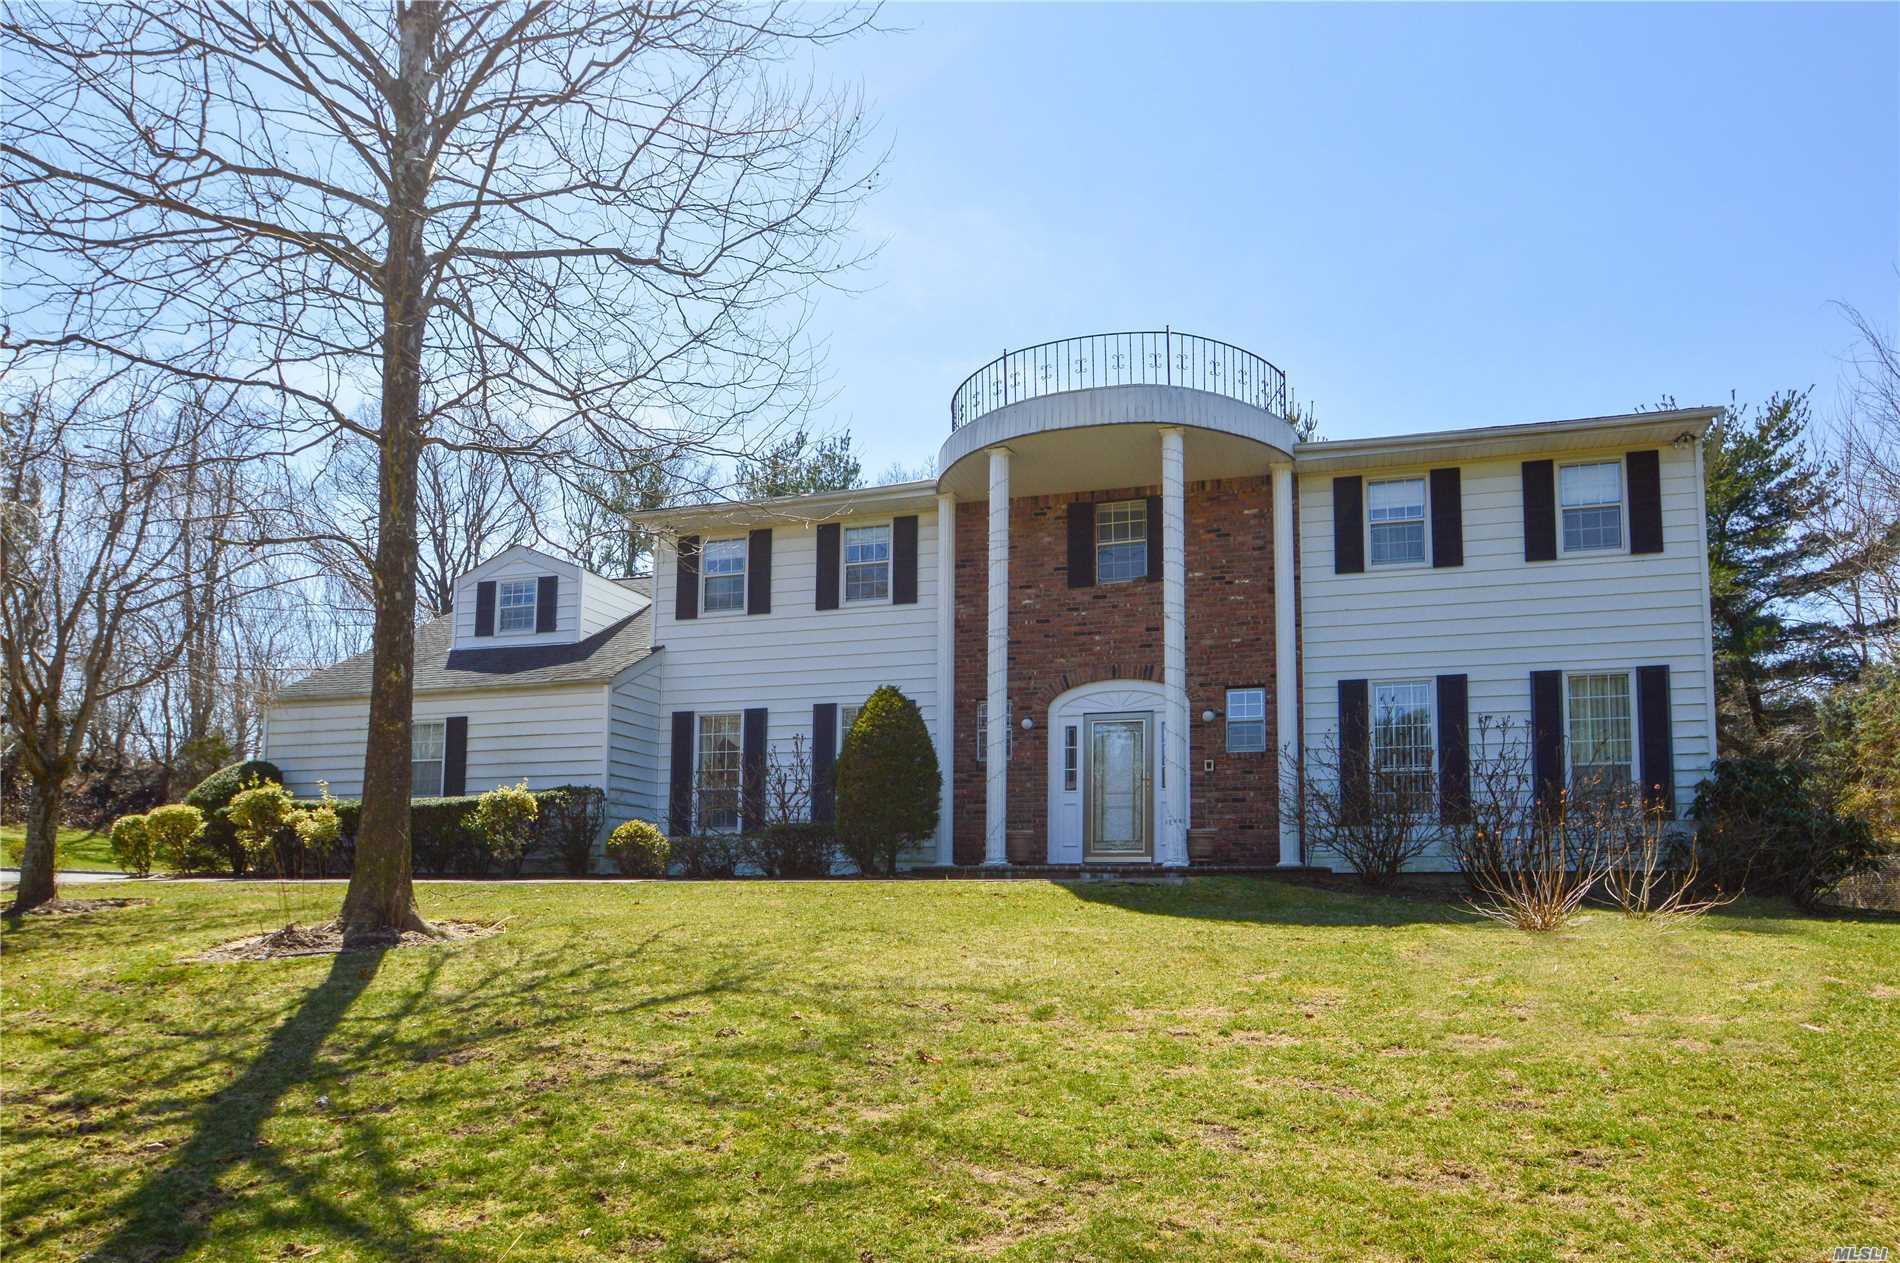 Open & Inviting, Center Hall Colonial, Nestled on 1 Acre Property, located In prestigious, Woodbury Estates on a Private cul de sac. Entertainers delight w/Over sized Lr, Den w/fireplace, Spacious Eik w/Island, sill stone & breakfast Area, Expansive 5Brs, mbr w/Office, Jacuzzi, & 2 W/I closets, Lg Play area, (loft) w/fbth on 2nd Fl. Huge Full Finished Basement. (Taxes being grieved)